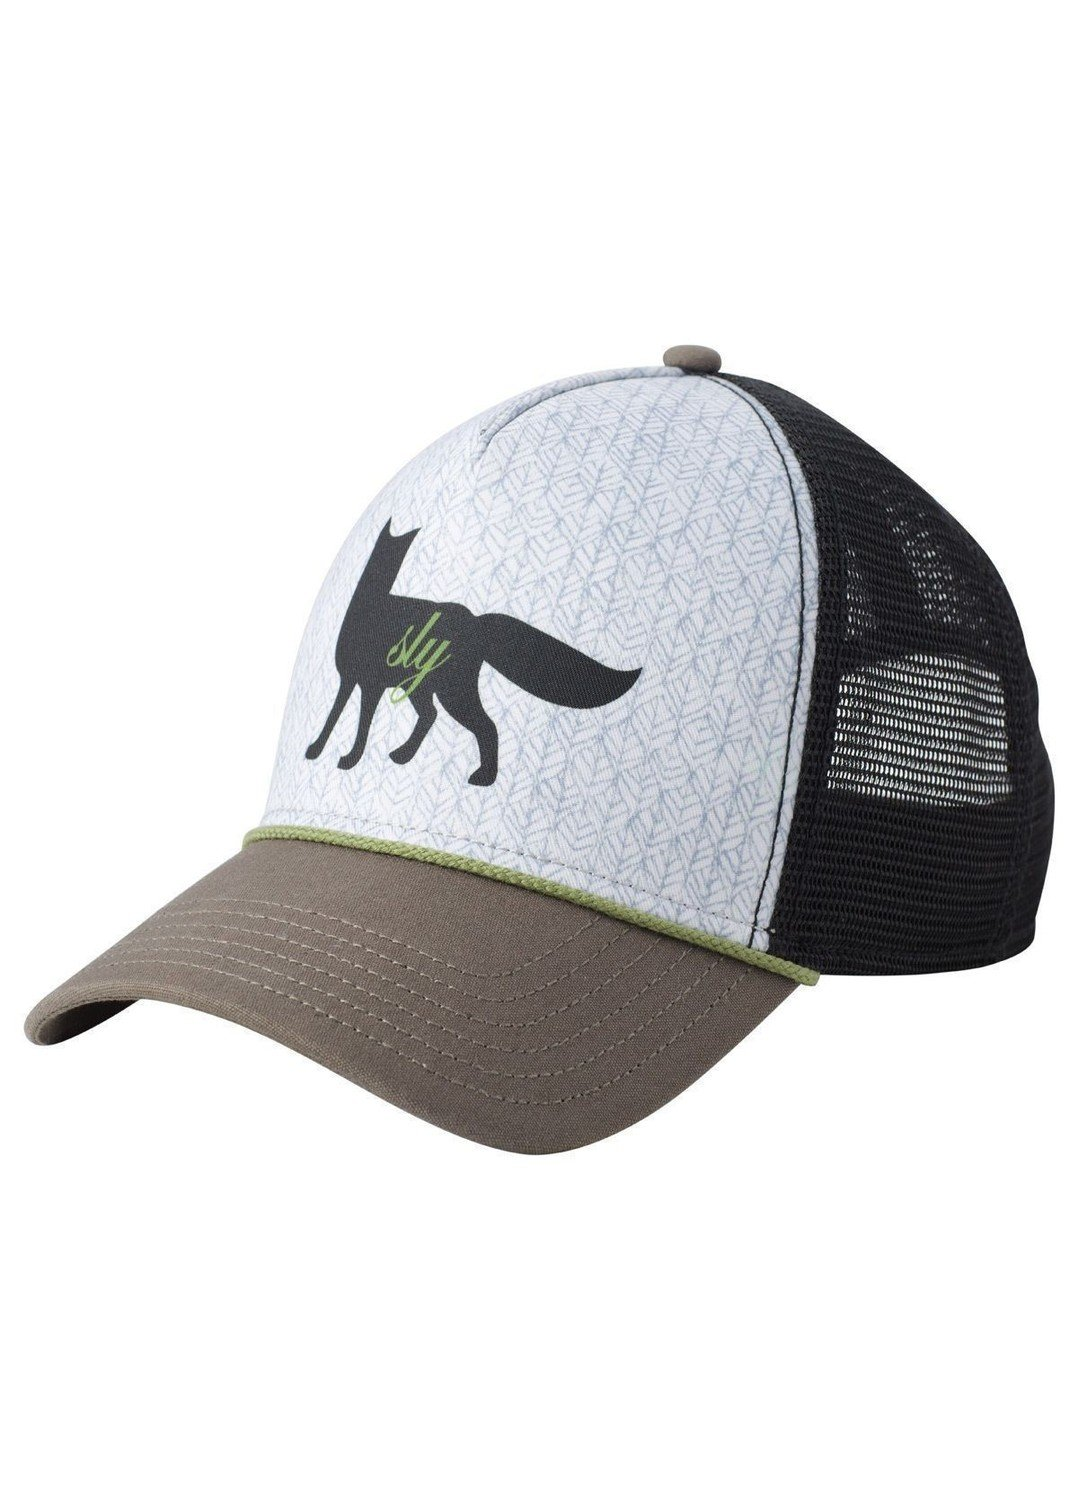 prAna Women's Journeyman Trucker Hat Sly Fox